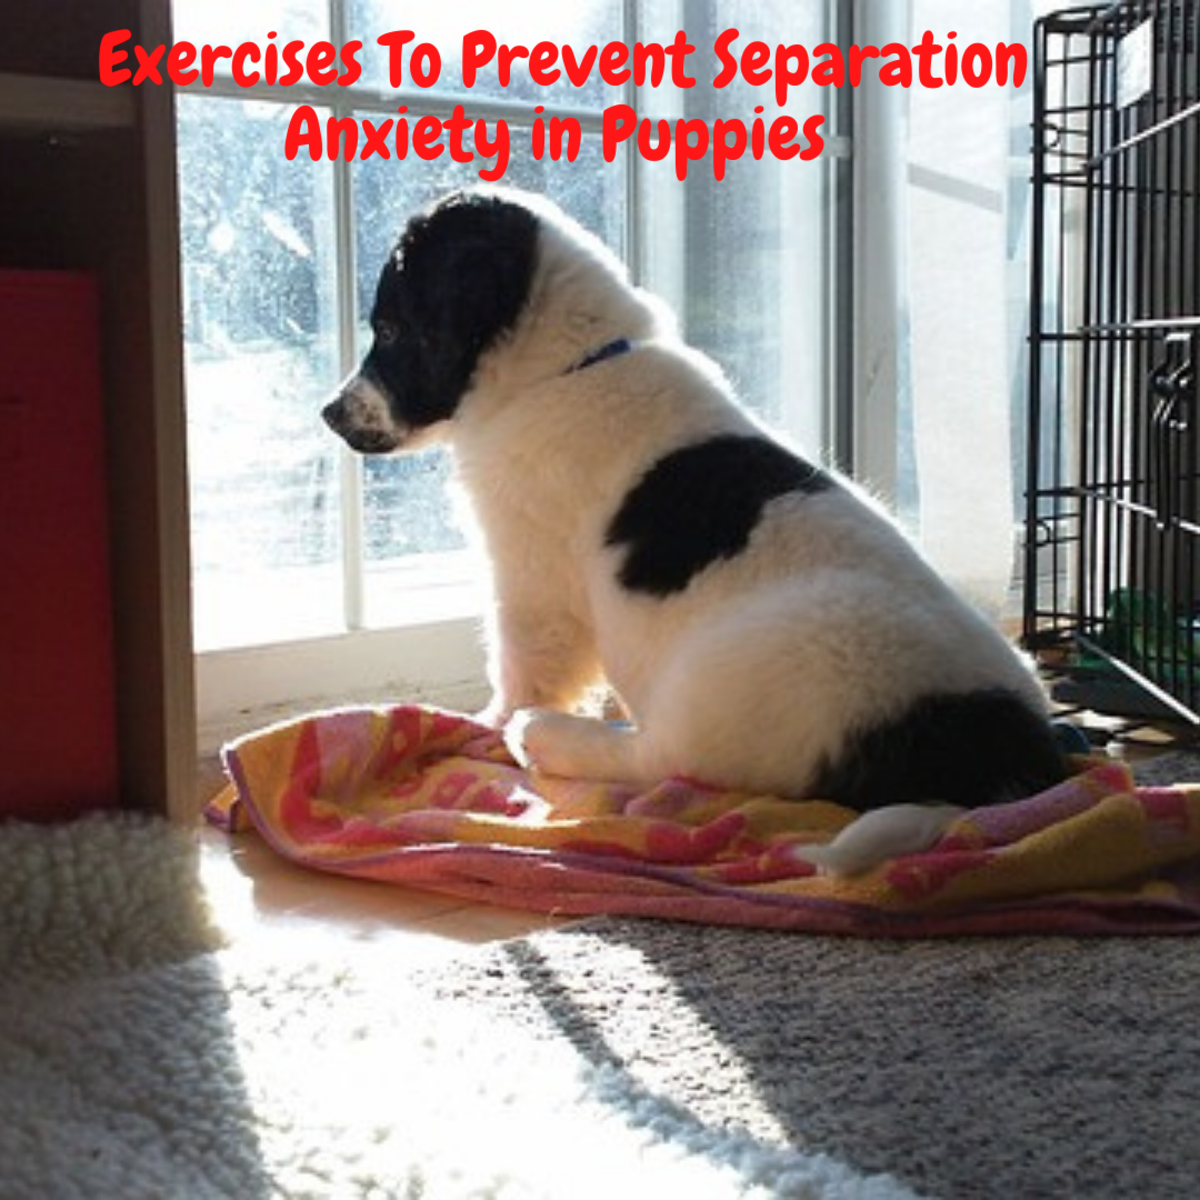 exercises-to-prevent-separation-anxiety-in-puppies